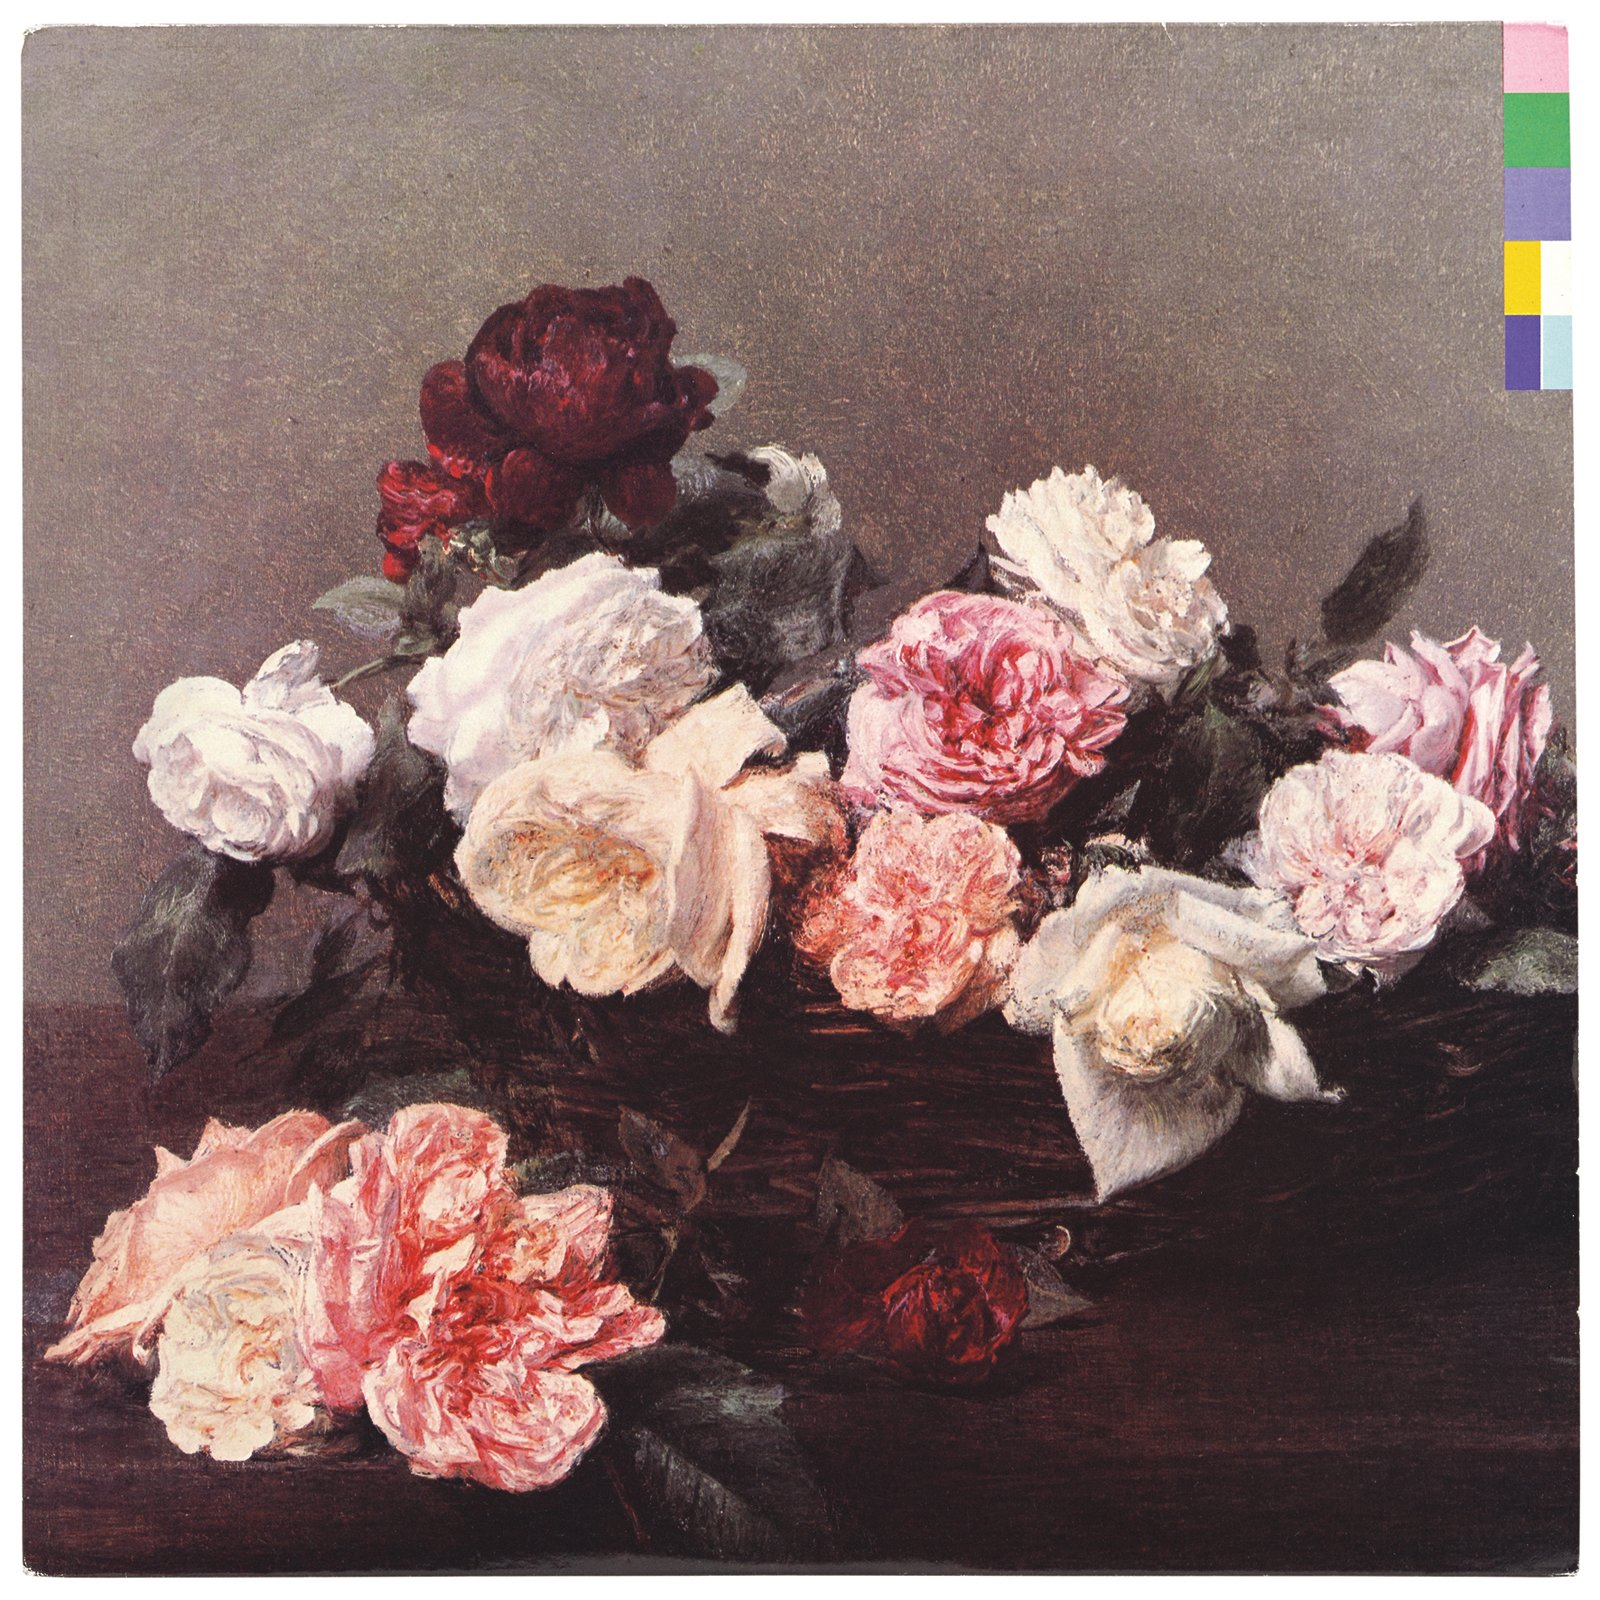 "Peter Saville, ""Power, Corruption & Lies"" album cover for New Order, 1983. © Peter Saville  Photo 3 of 12 in ""Postmodernism"" at the V&A Museum"